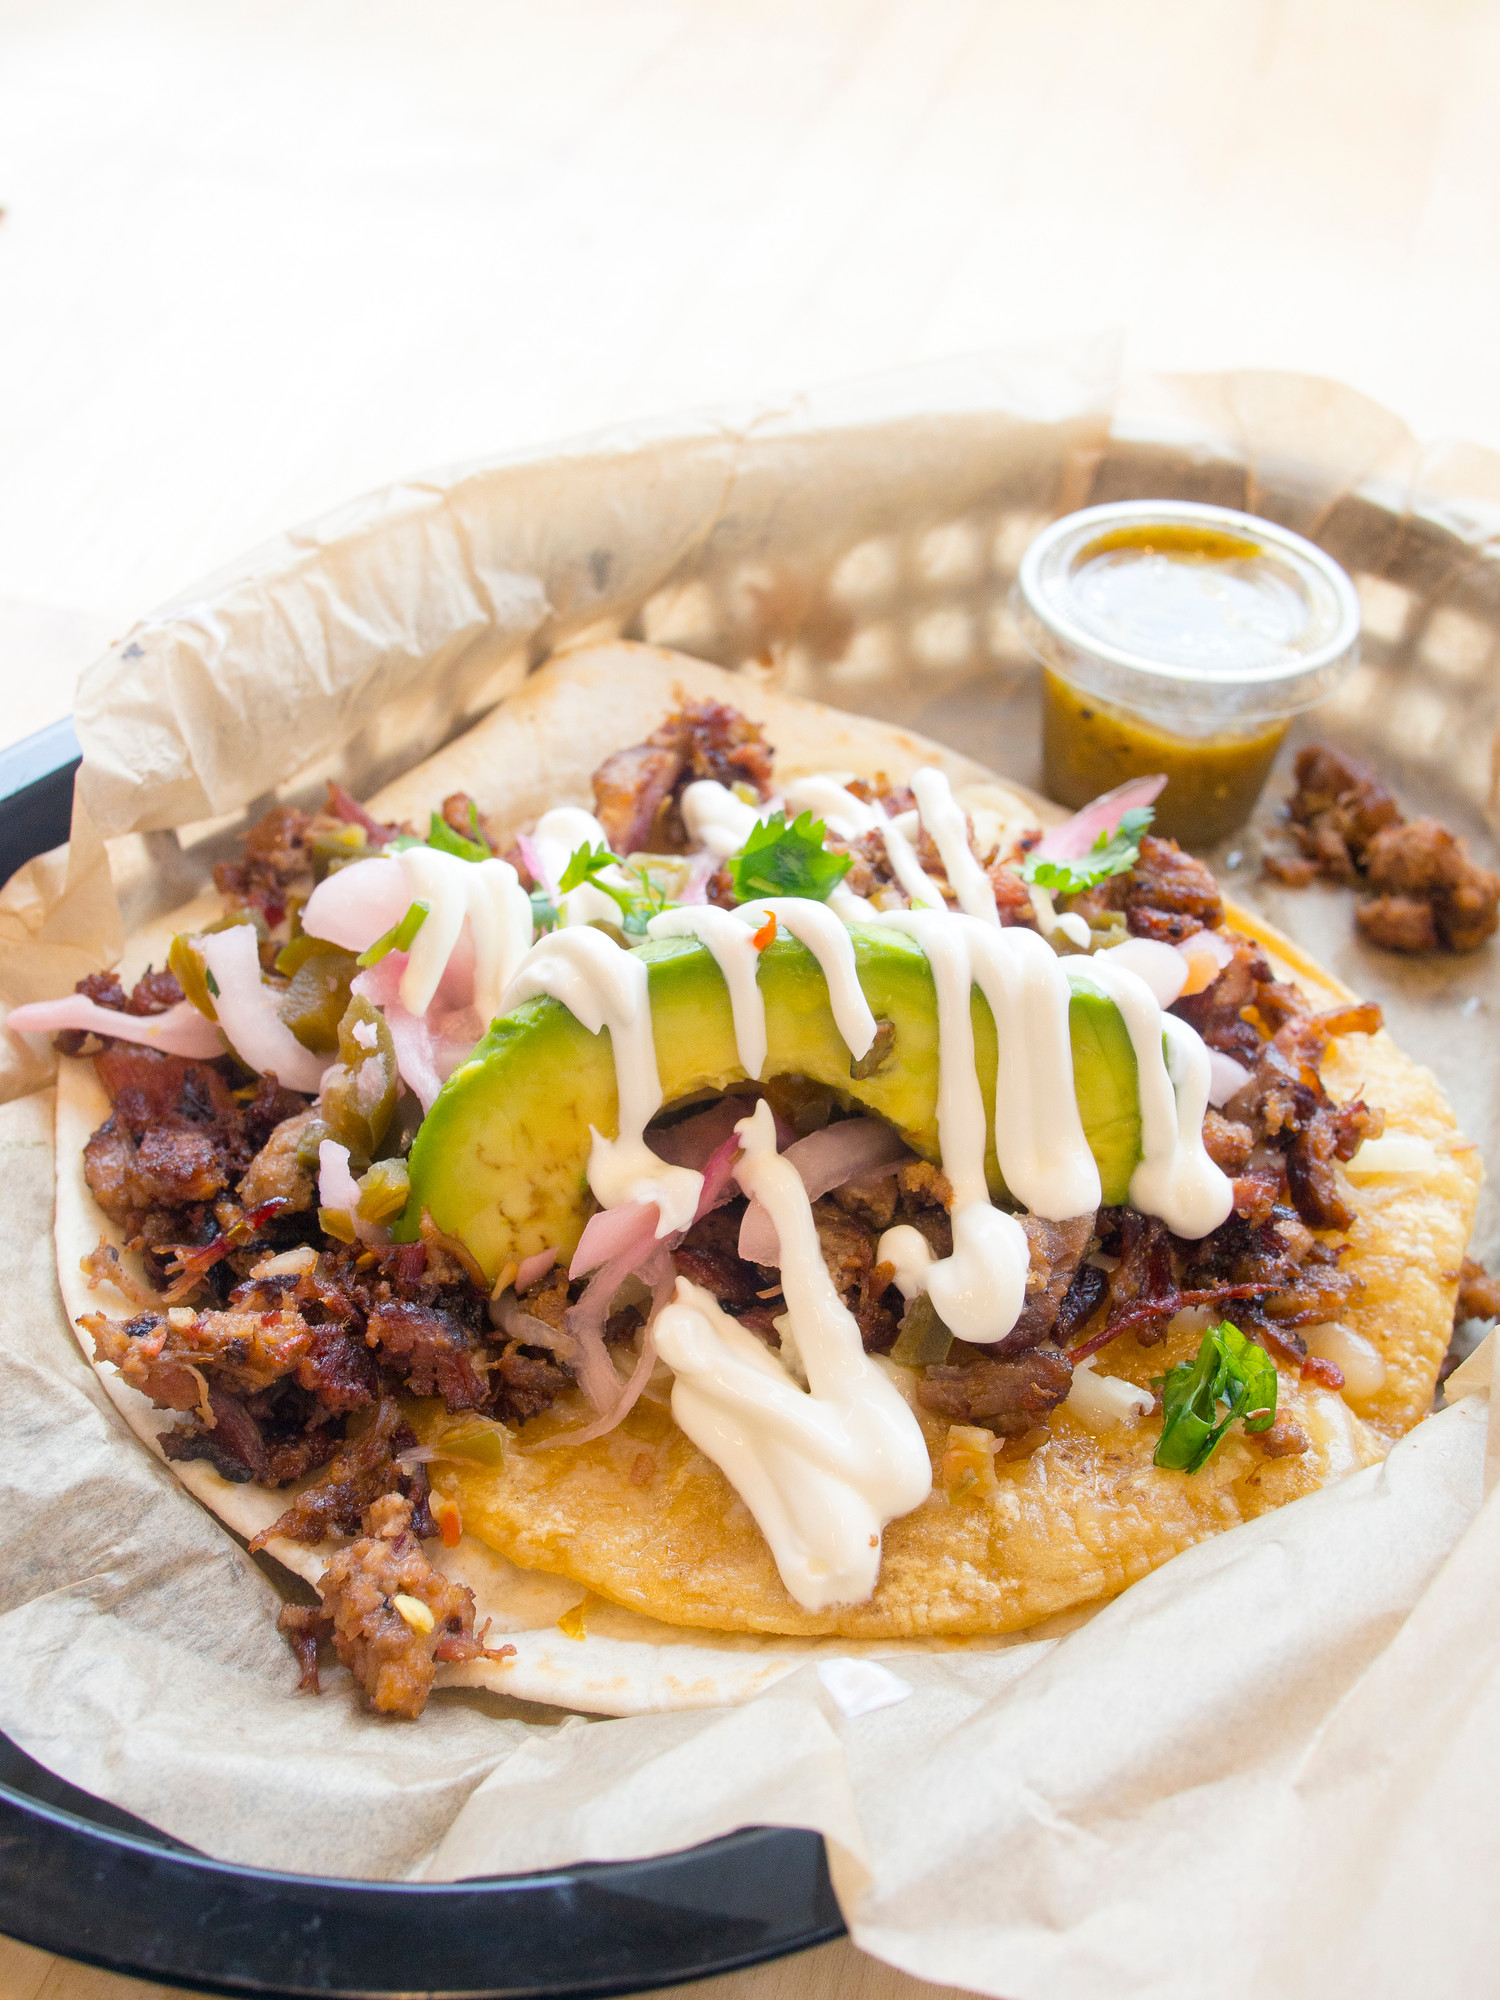 Torchy's secret menu - Matador is one of seven secret tacos at Torchy's Tacos.